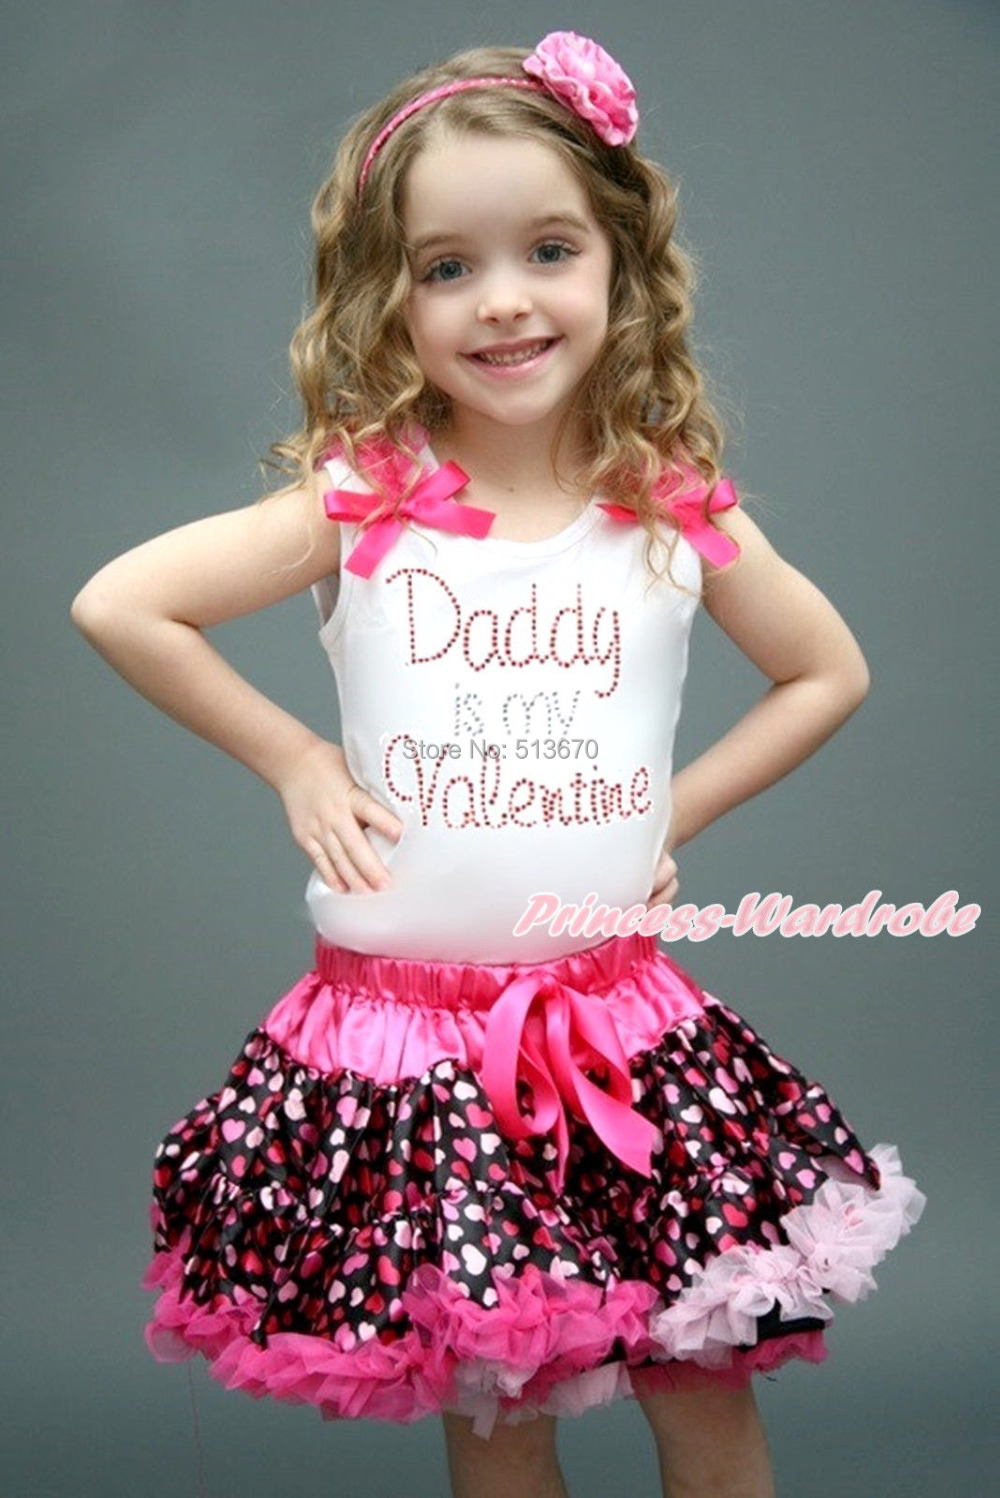 Rhinestone Daddy Is My Valentine White Top Hot Pink Heart Pettiskirt Set 1-8Year MAPSA0164 white valentine браслет